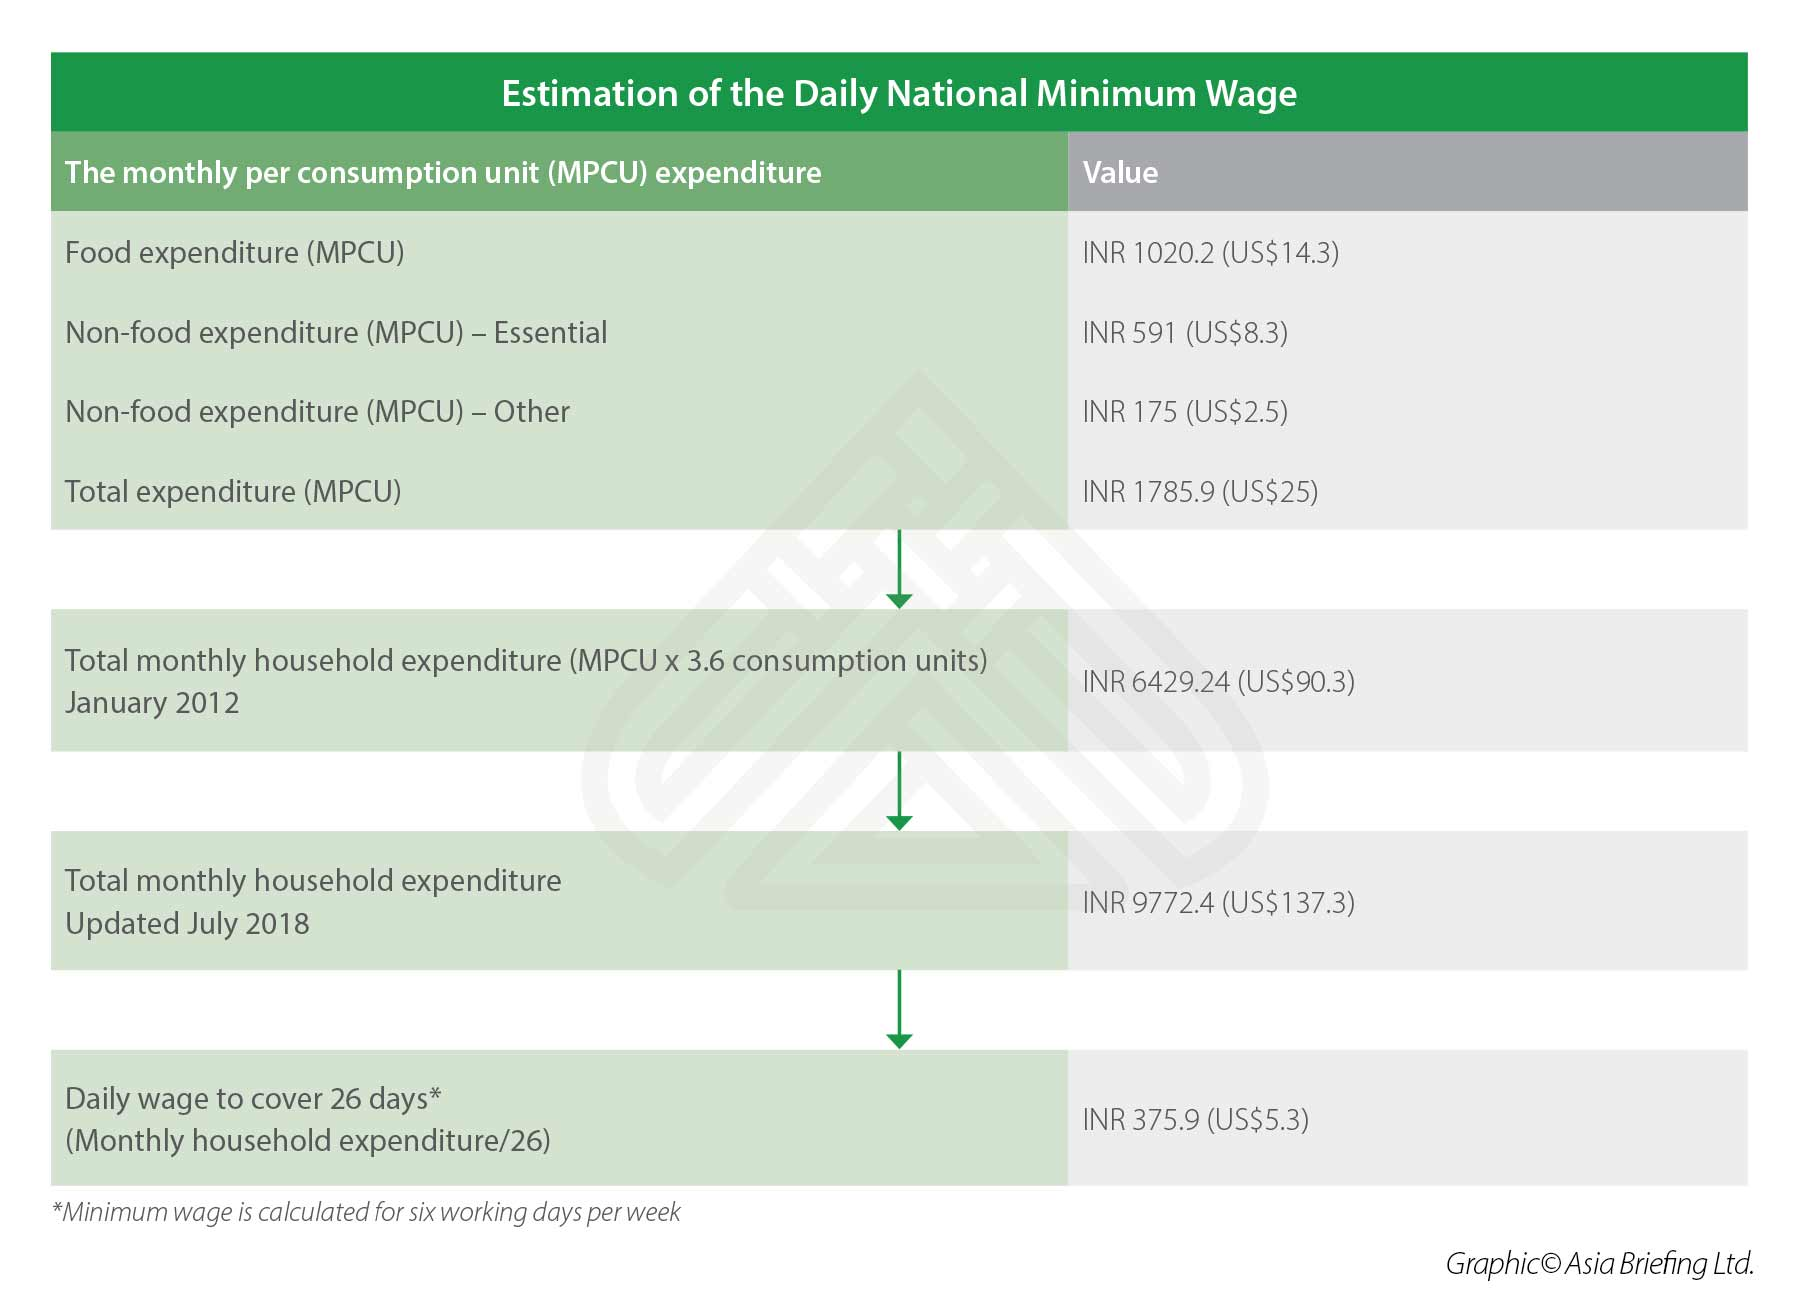 Estimation of the Daily National Minimum Wage in India